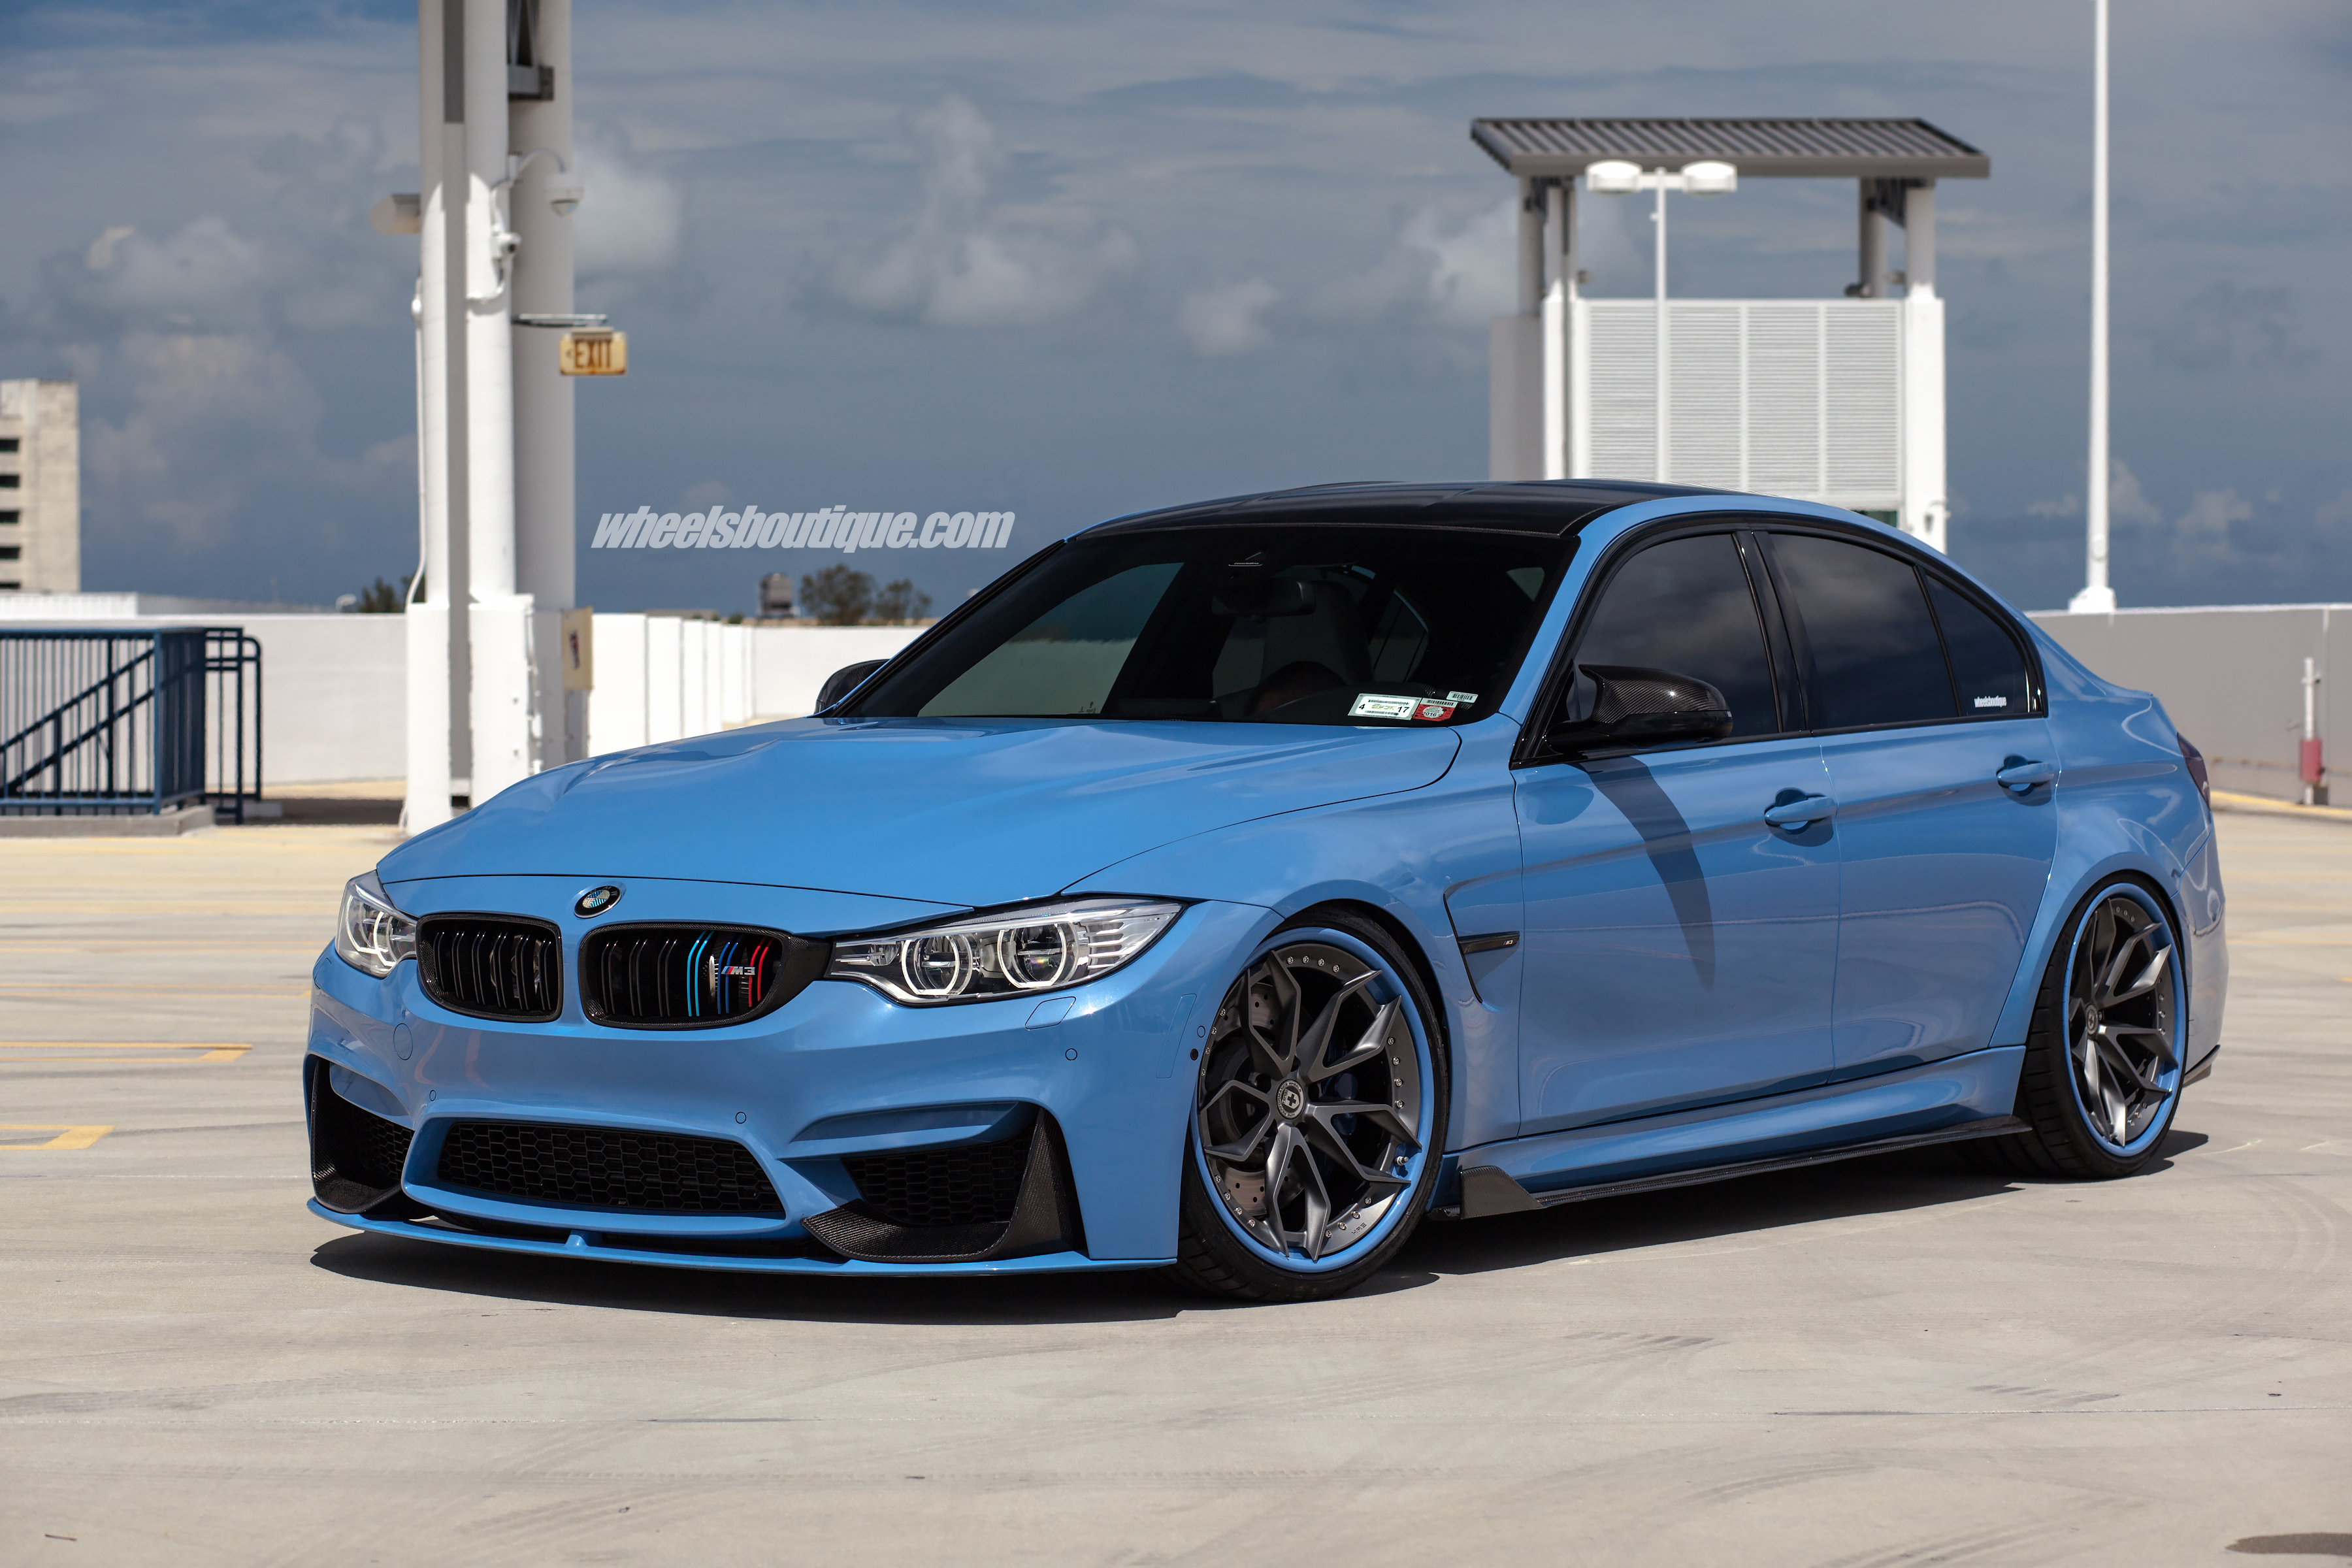 bmw m3 f80 on hre s201 28330975395 o